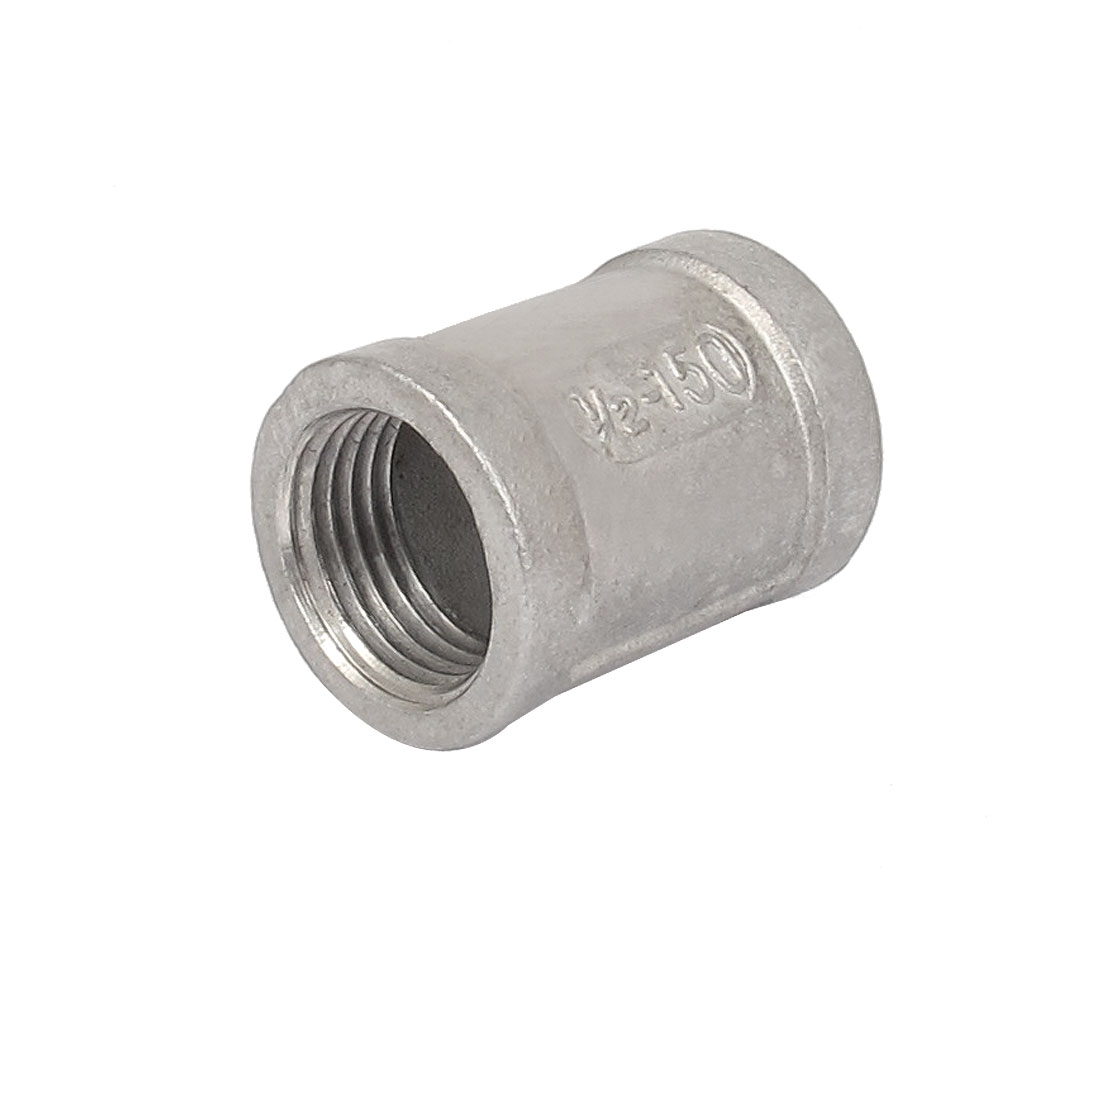 1/2BSP Female Threaded 304 Stainless Steel Pipe Coupling Fitting Connector